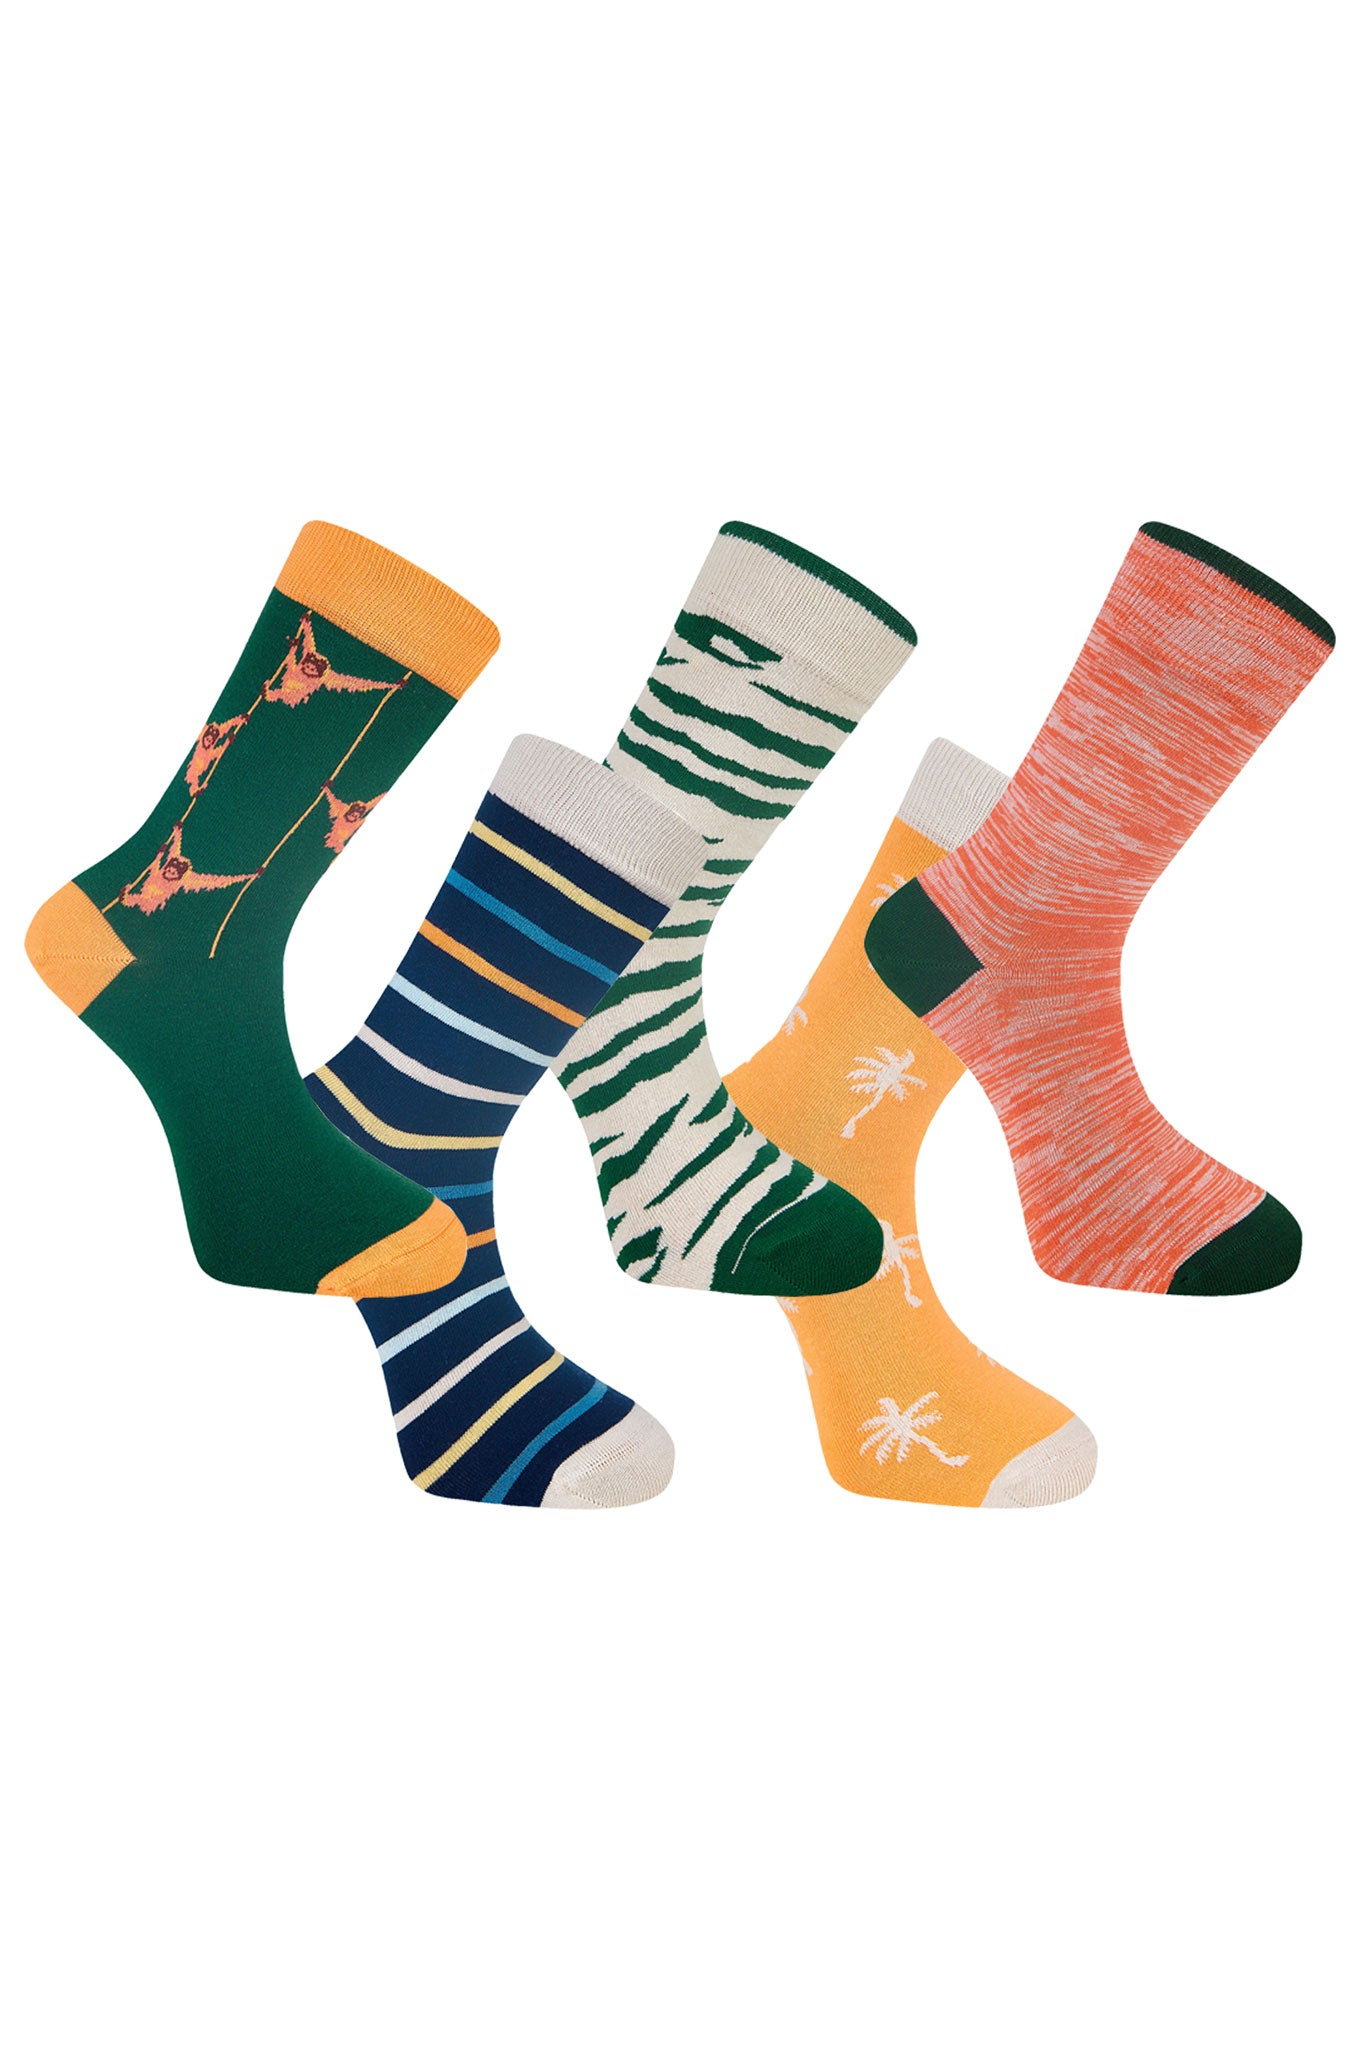 LUCKY DIP - GOTS Organic Cotton Sock Bundle (5 Pairs)